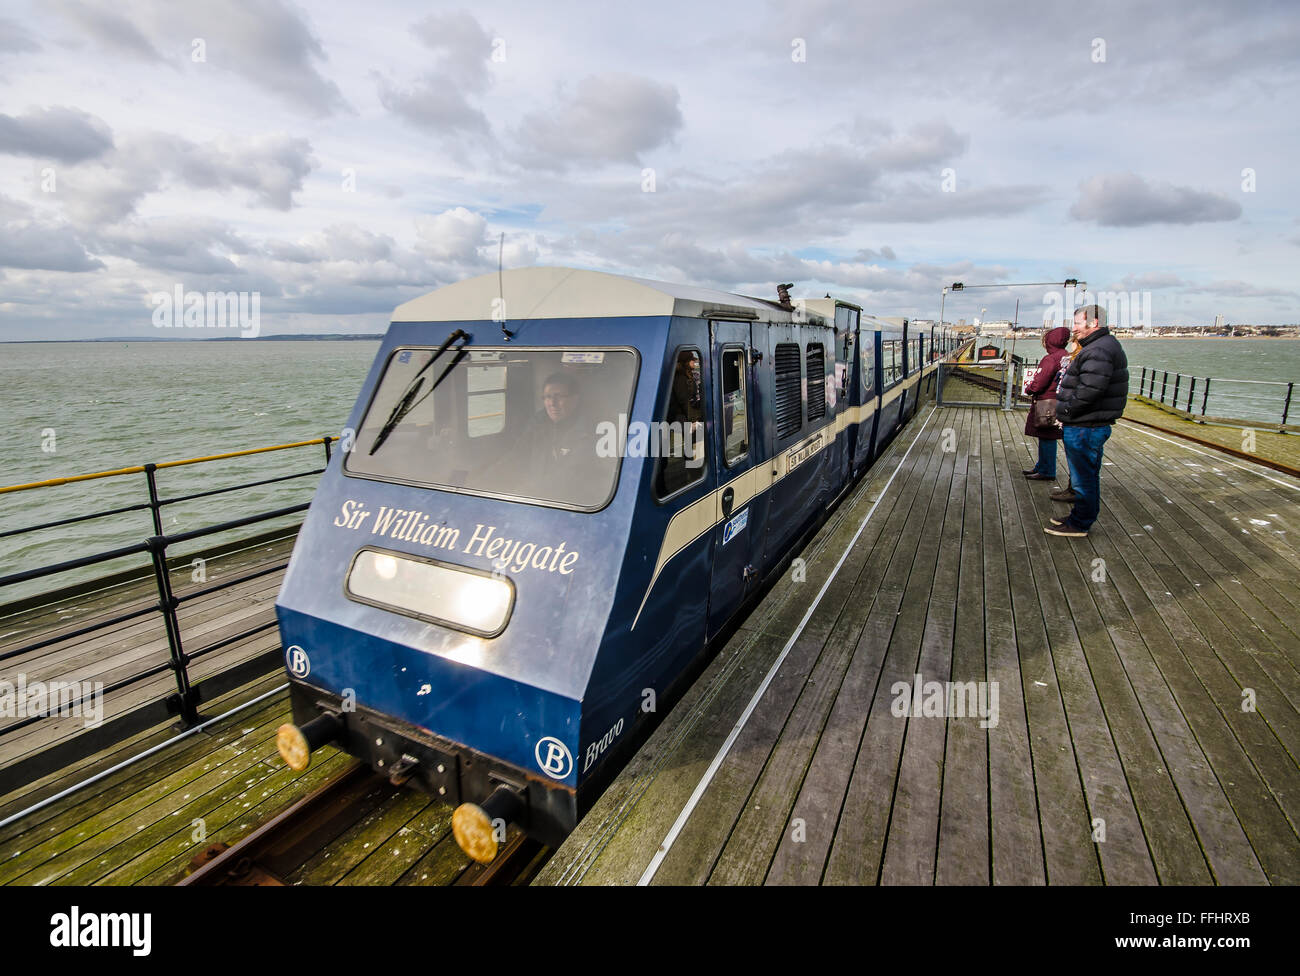 Southend Pier is a major landmark in Southend. Extending 1.34 miles (2.16 km) into the Thames Estuary, it is the - Stock Image